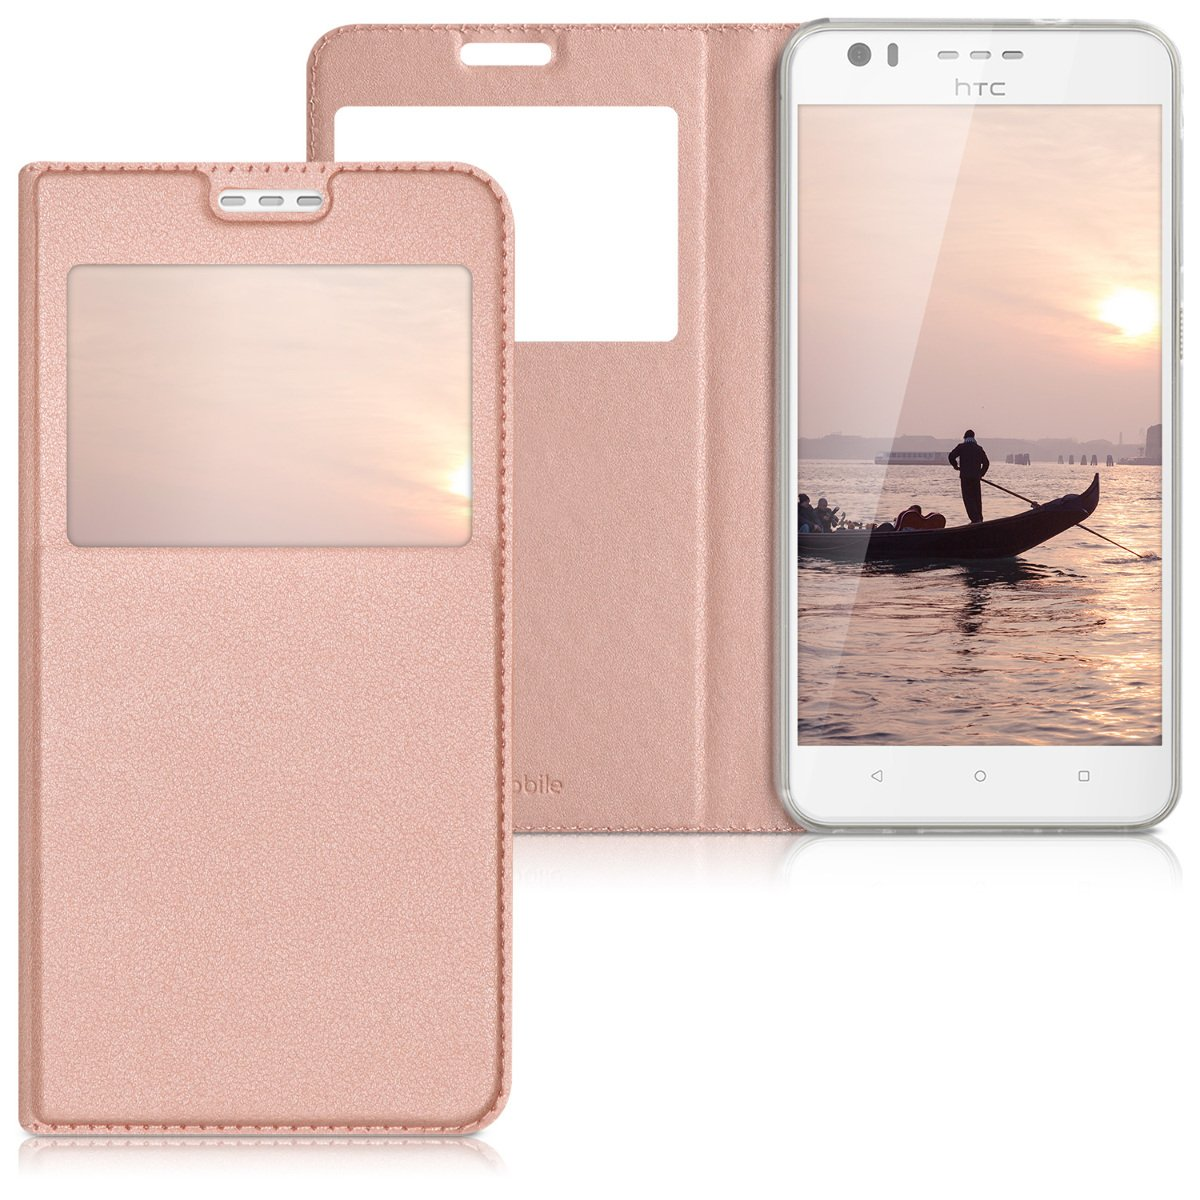 kwmobile Flip Case for HTC Desire 10 Lifestyle - PU Leather Book Style Wallet Protective Cover with Window - Rose Gold